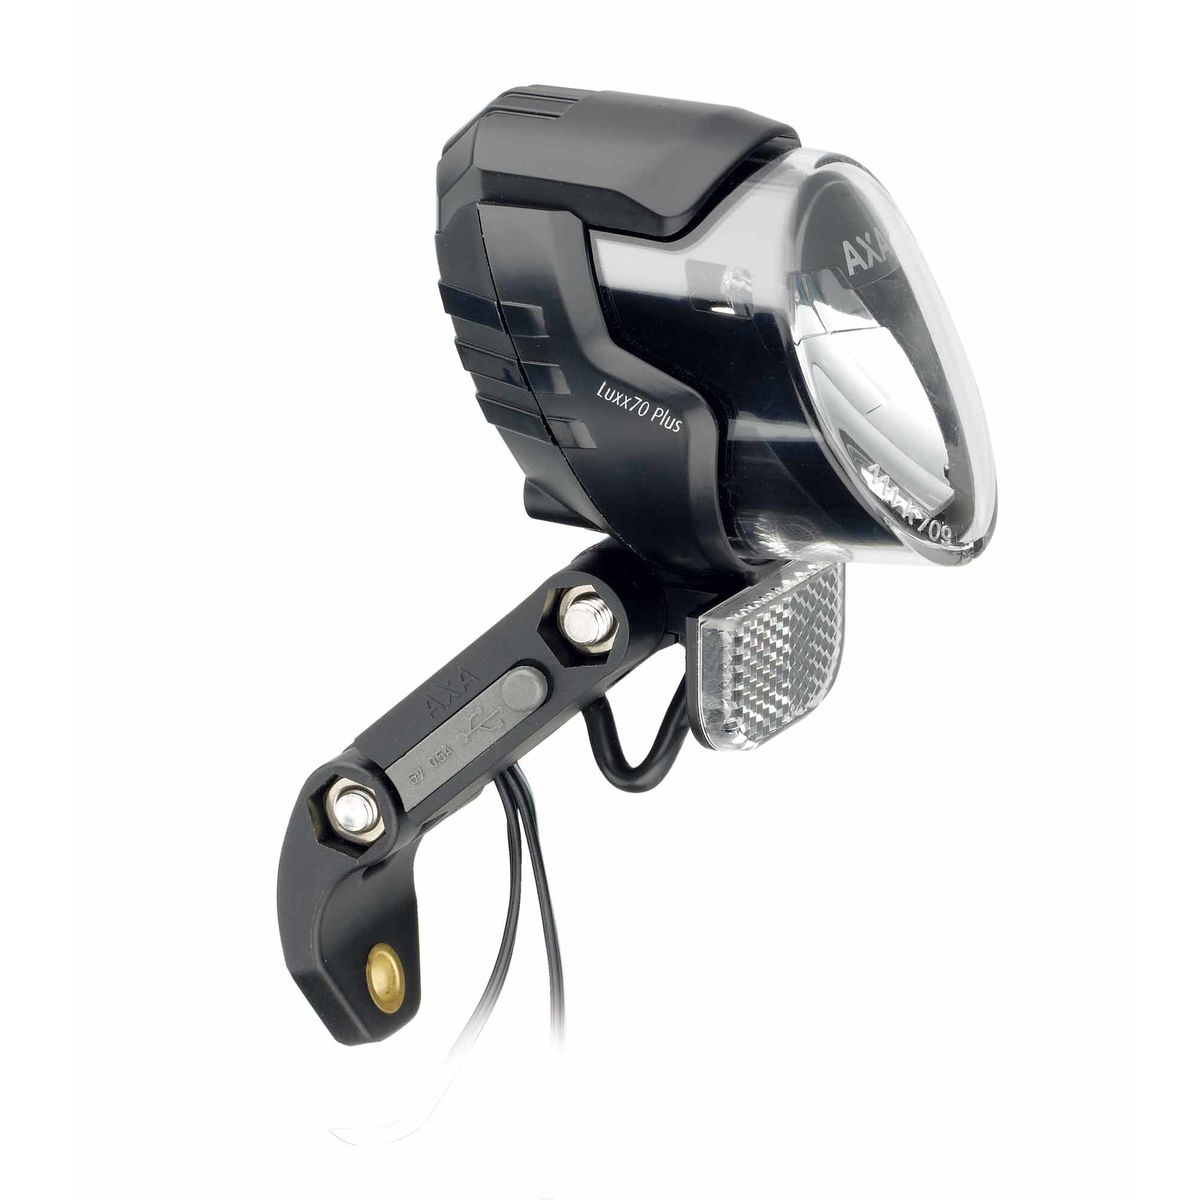 Luxx 70 Plus Steady Auto front light